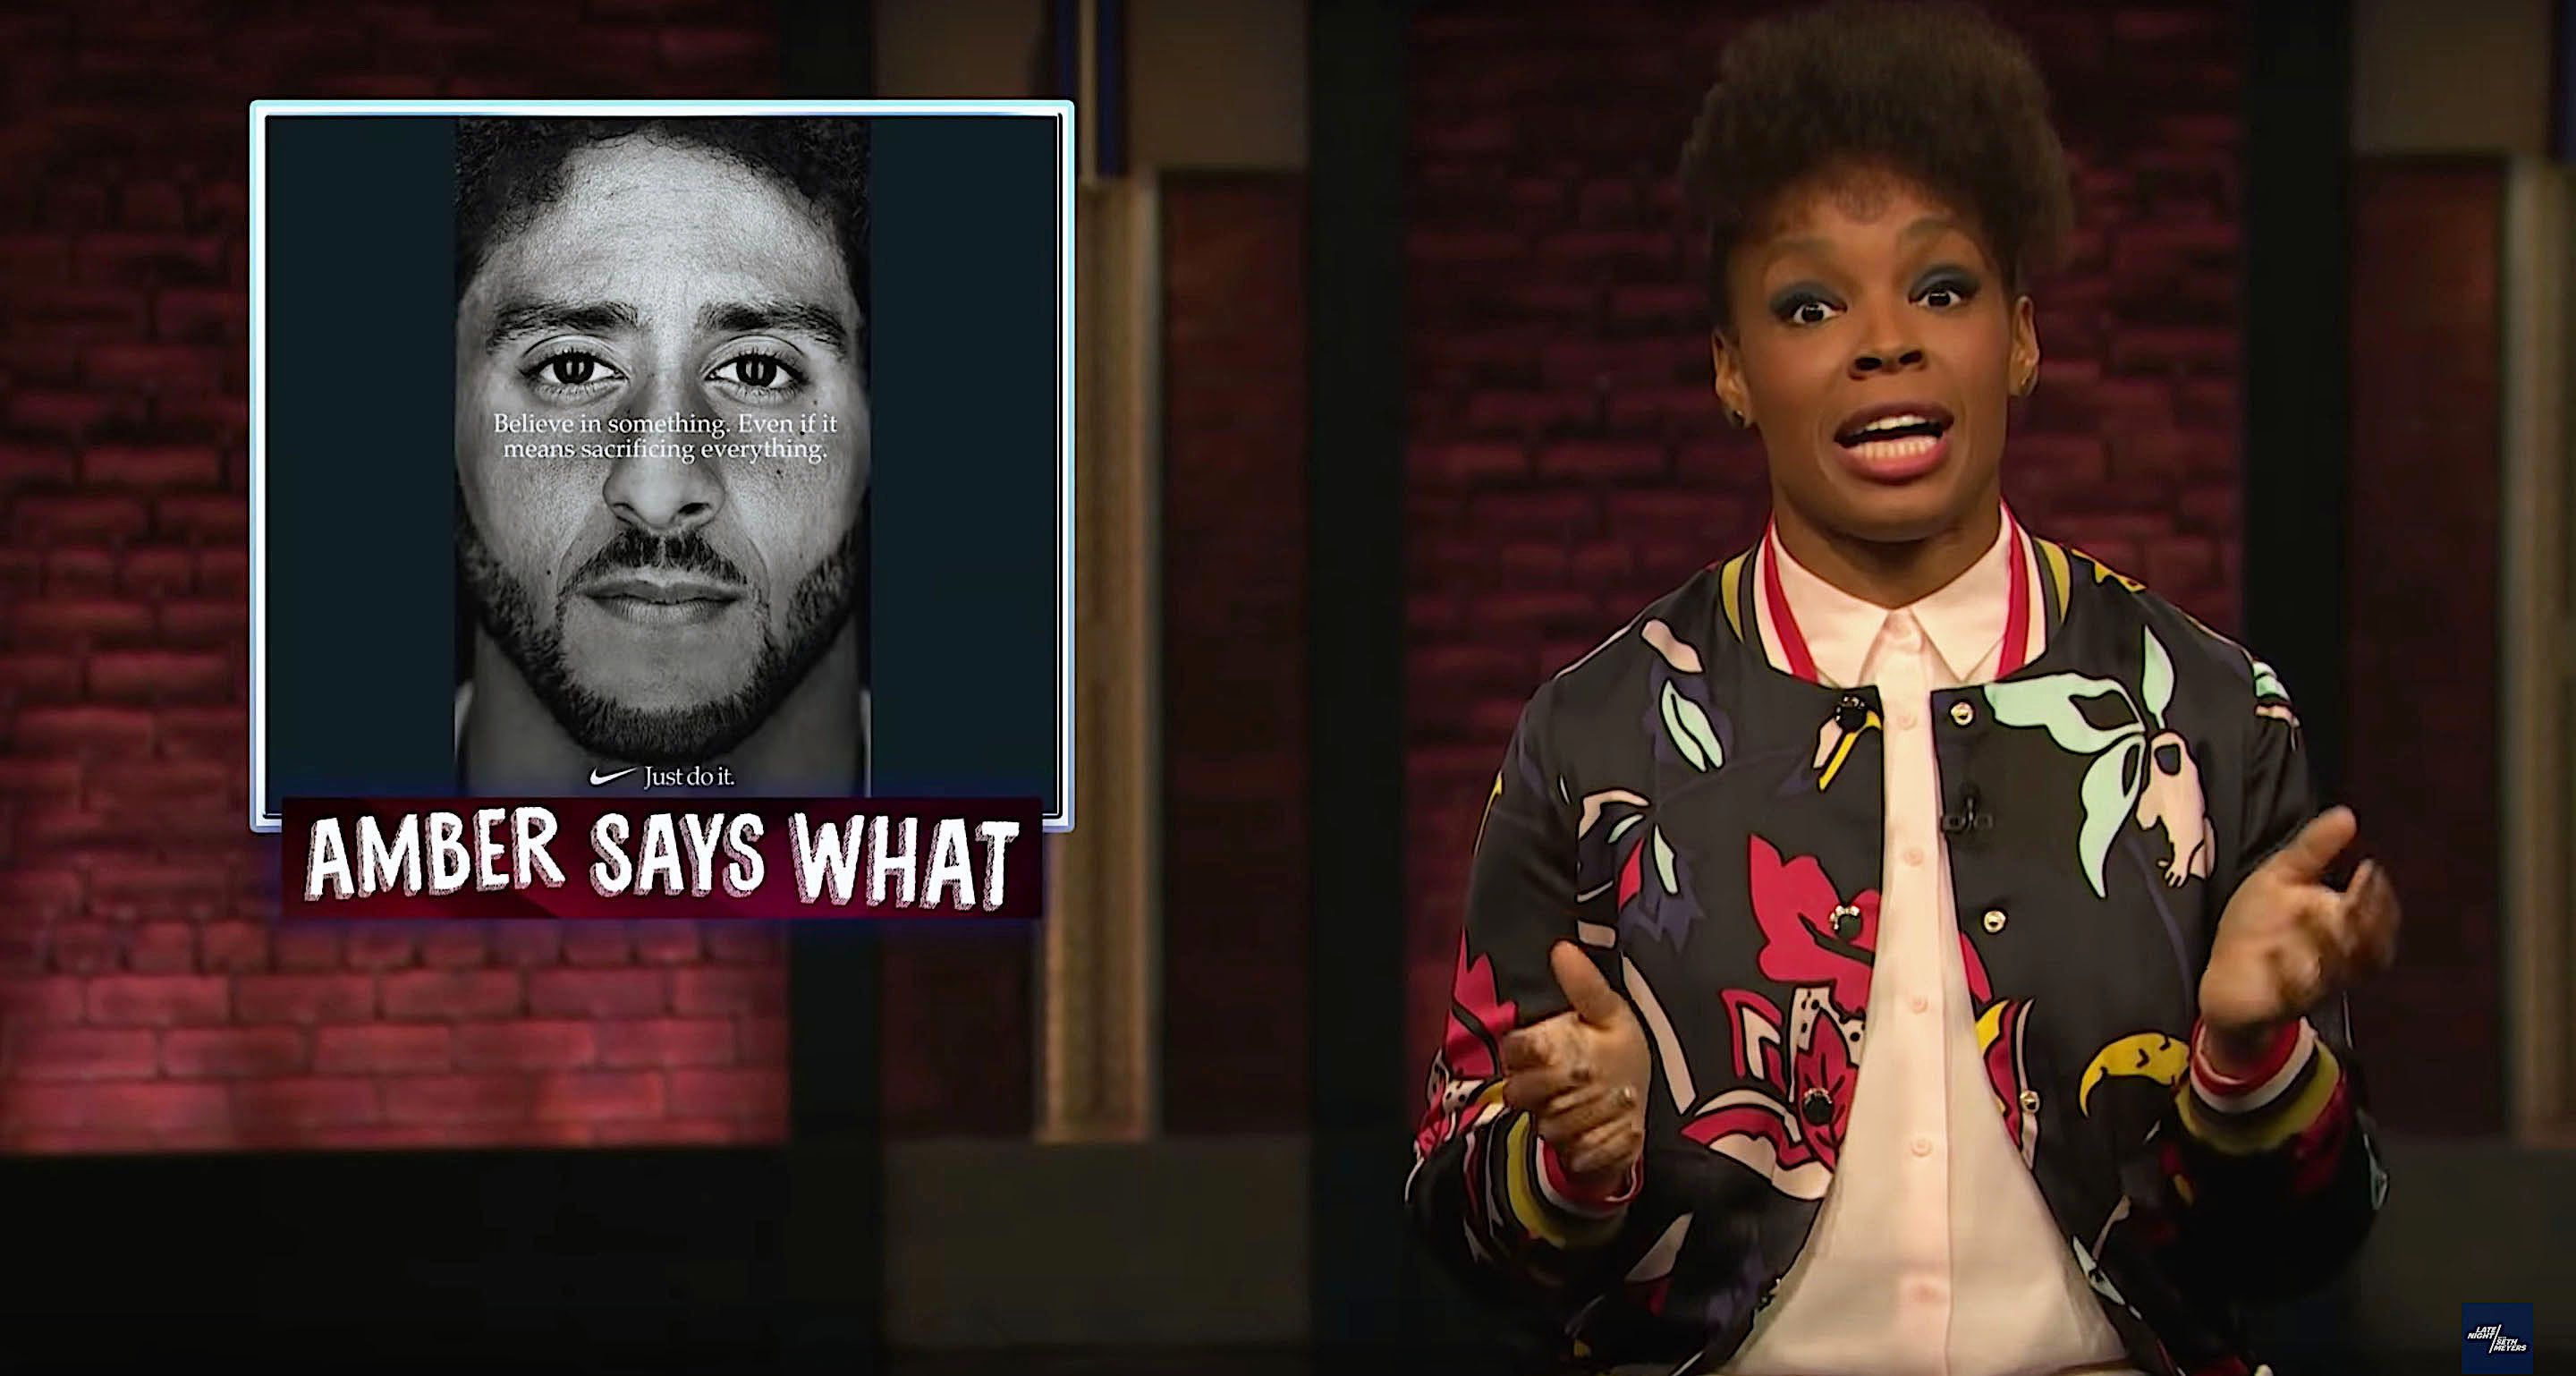 Late Night writer Amber Ruffin says its time for racists to take a knee